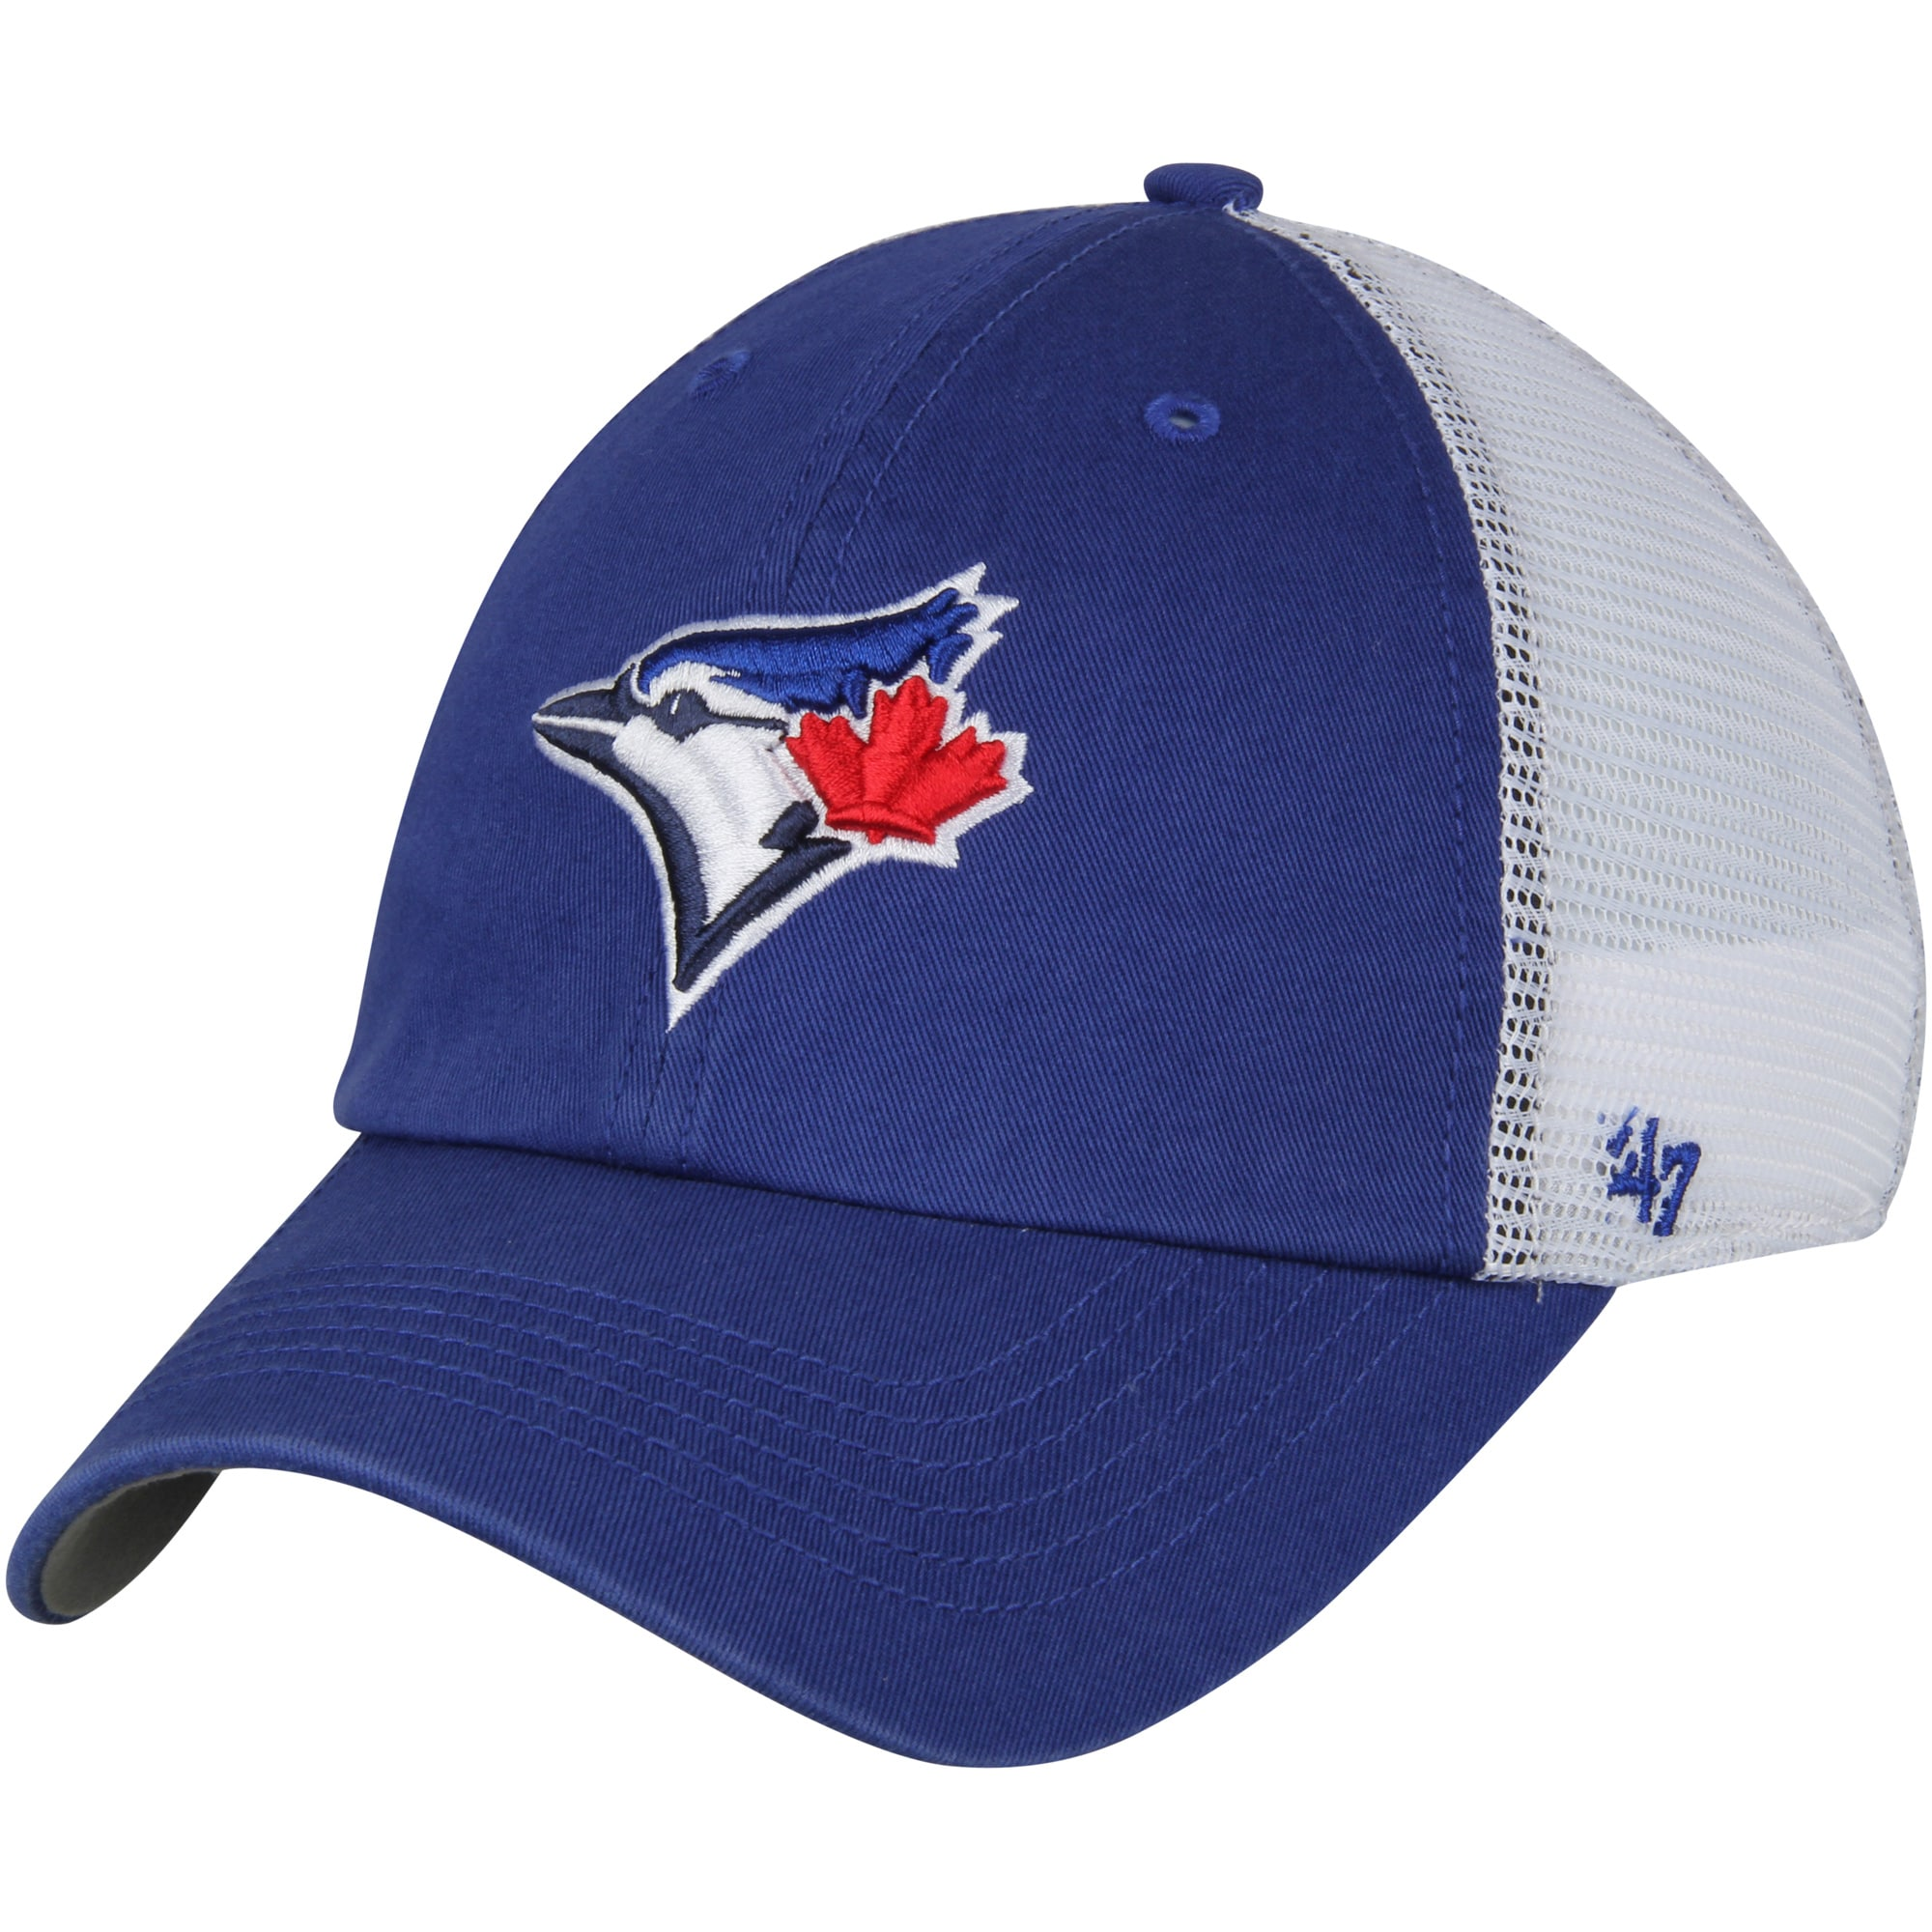 Toronto Blue Jays '47 Blue Hill Closer Flex Hat - Royal/White